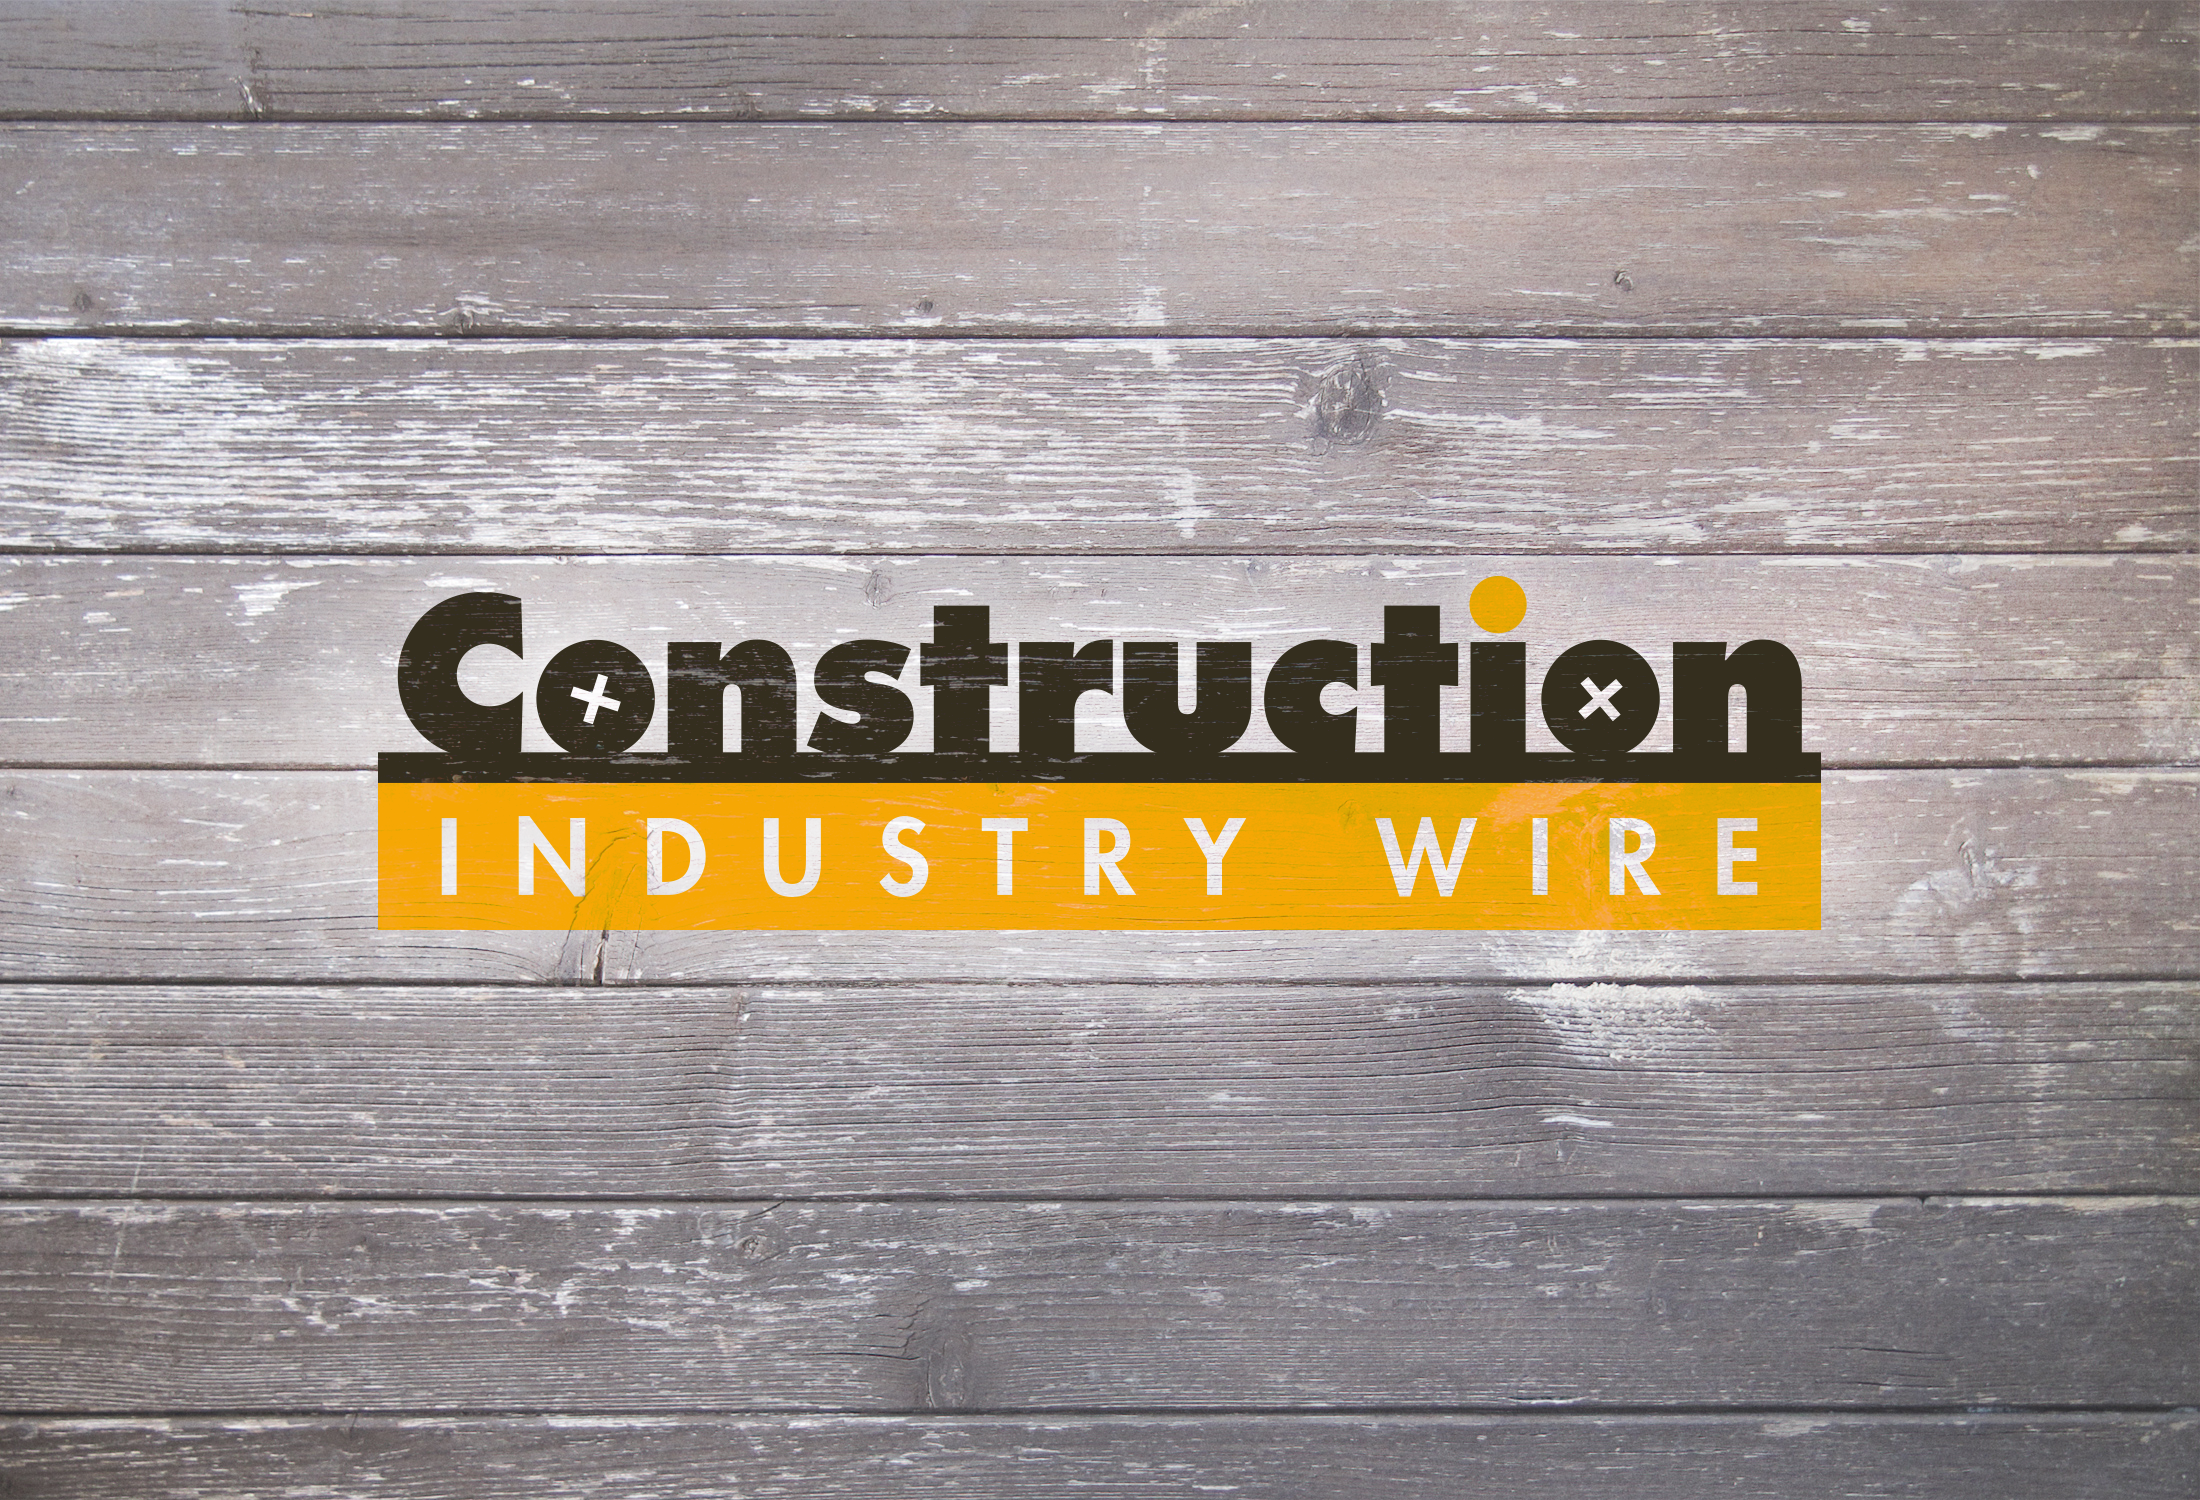 Construction Industry Wire Logo Against Wood Cladding.